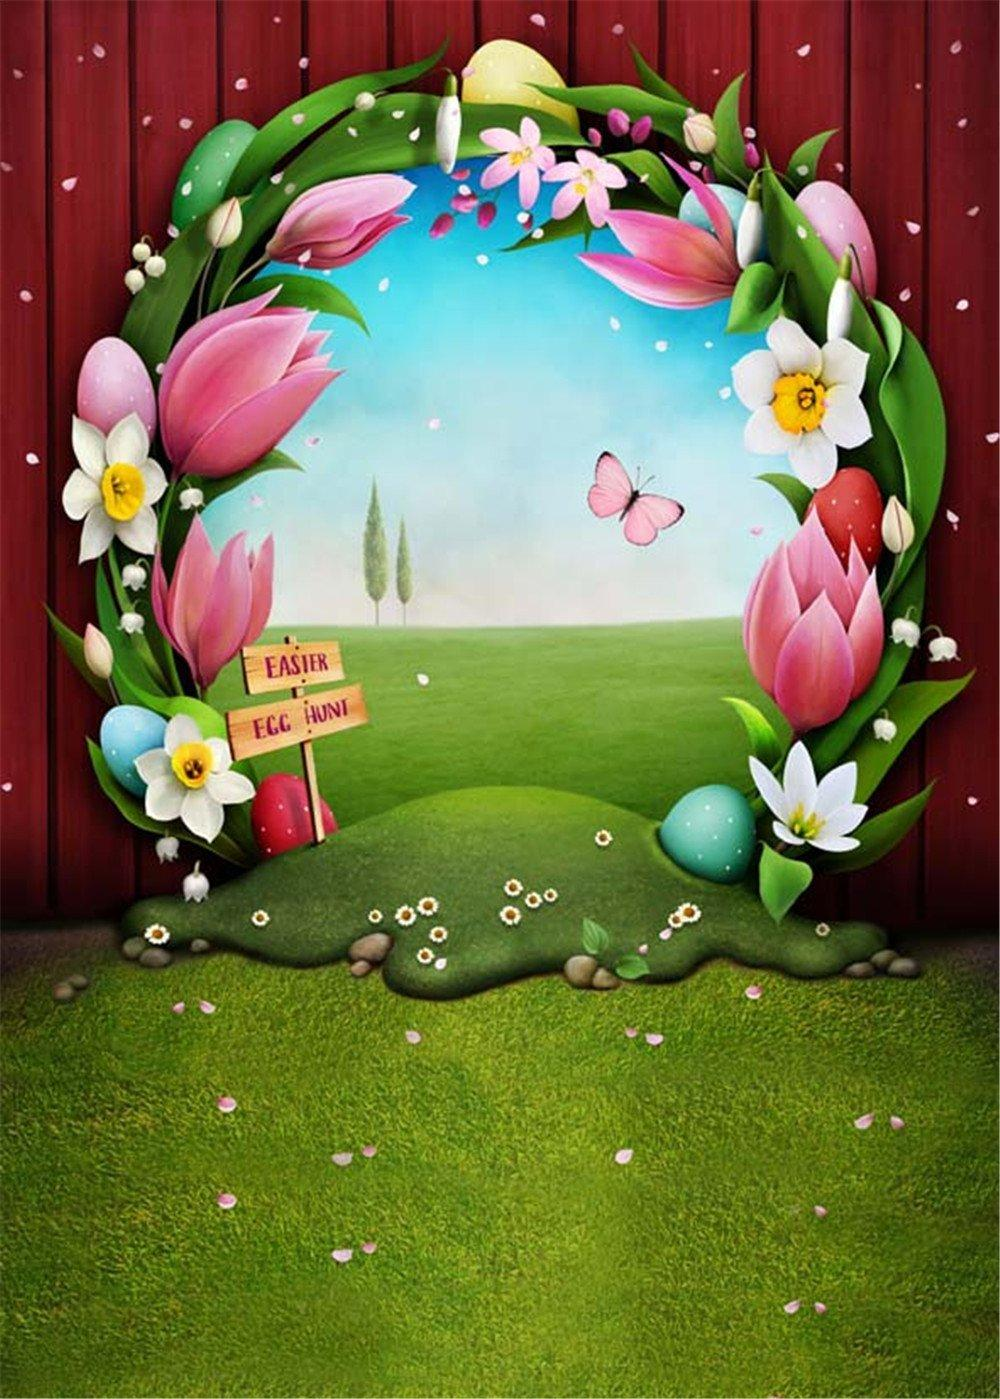 2019 Easter Egg Hunt Photography Backdrops Red Wood Wall ...